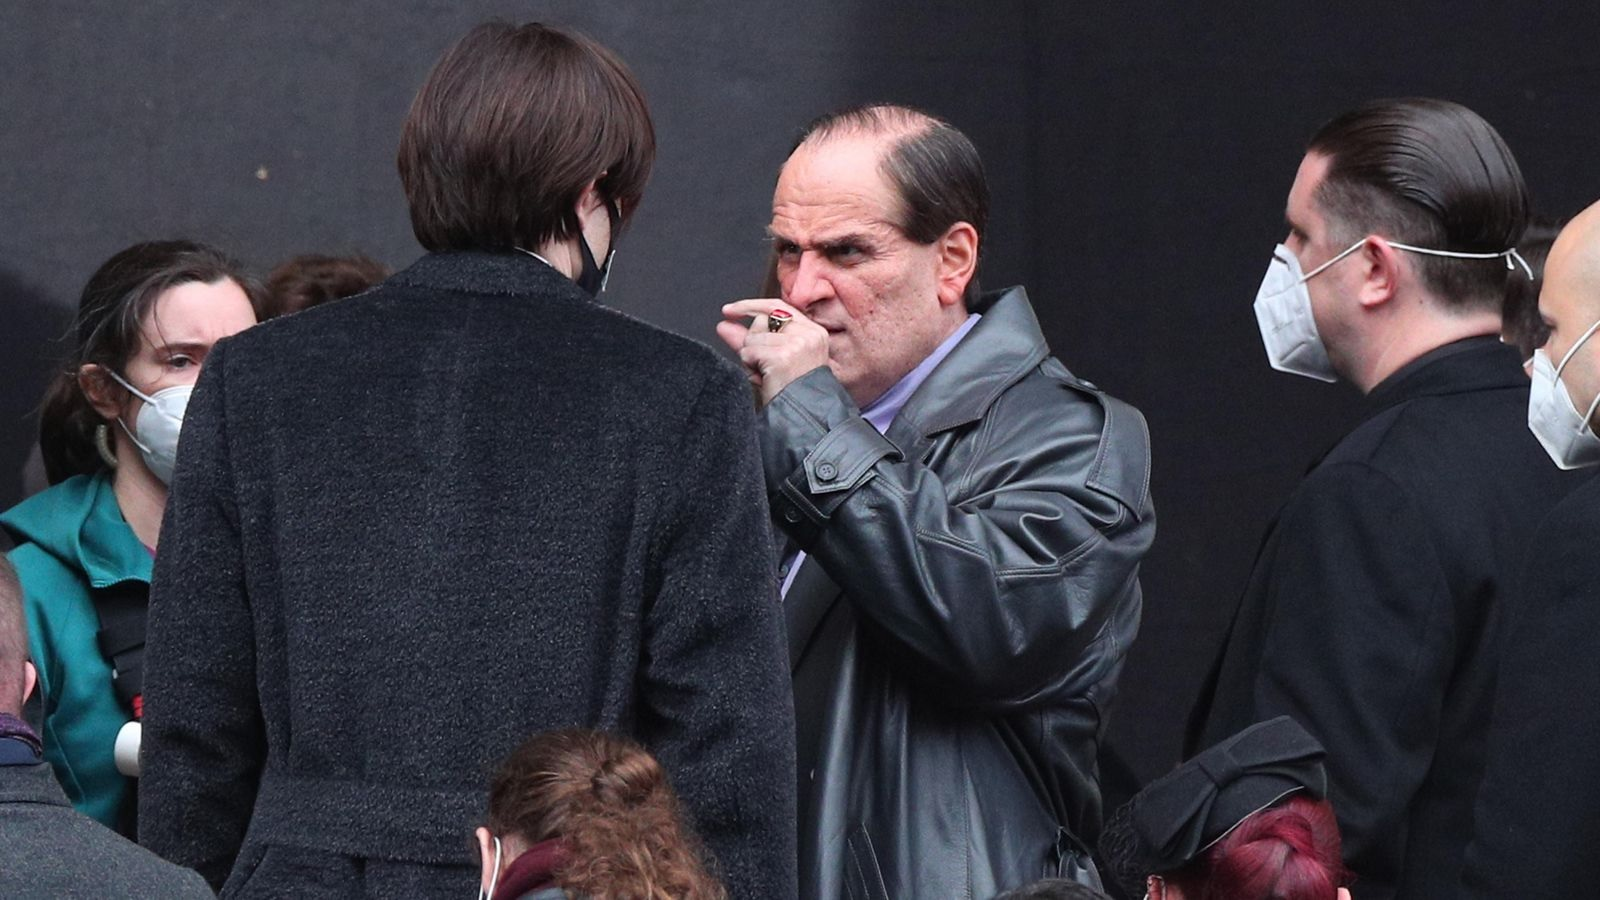 """Colin Farrell takes a drag off a stogie as Oswald Cobblepot during filming for """"The Batman""""."""